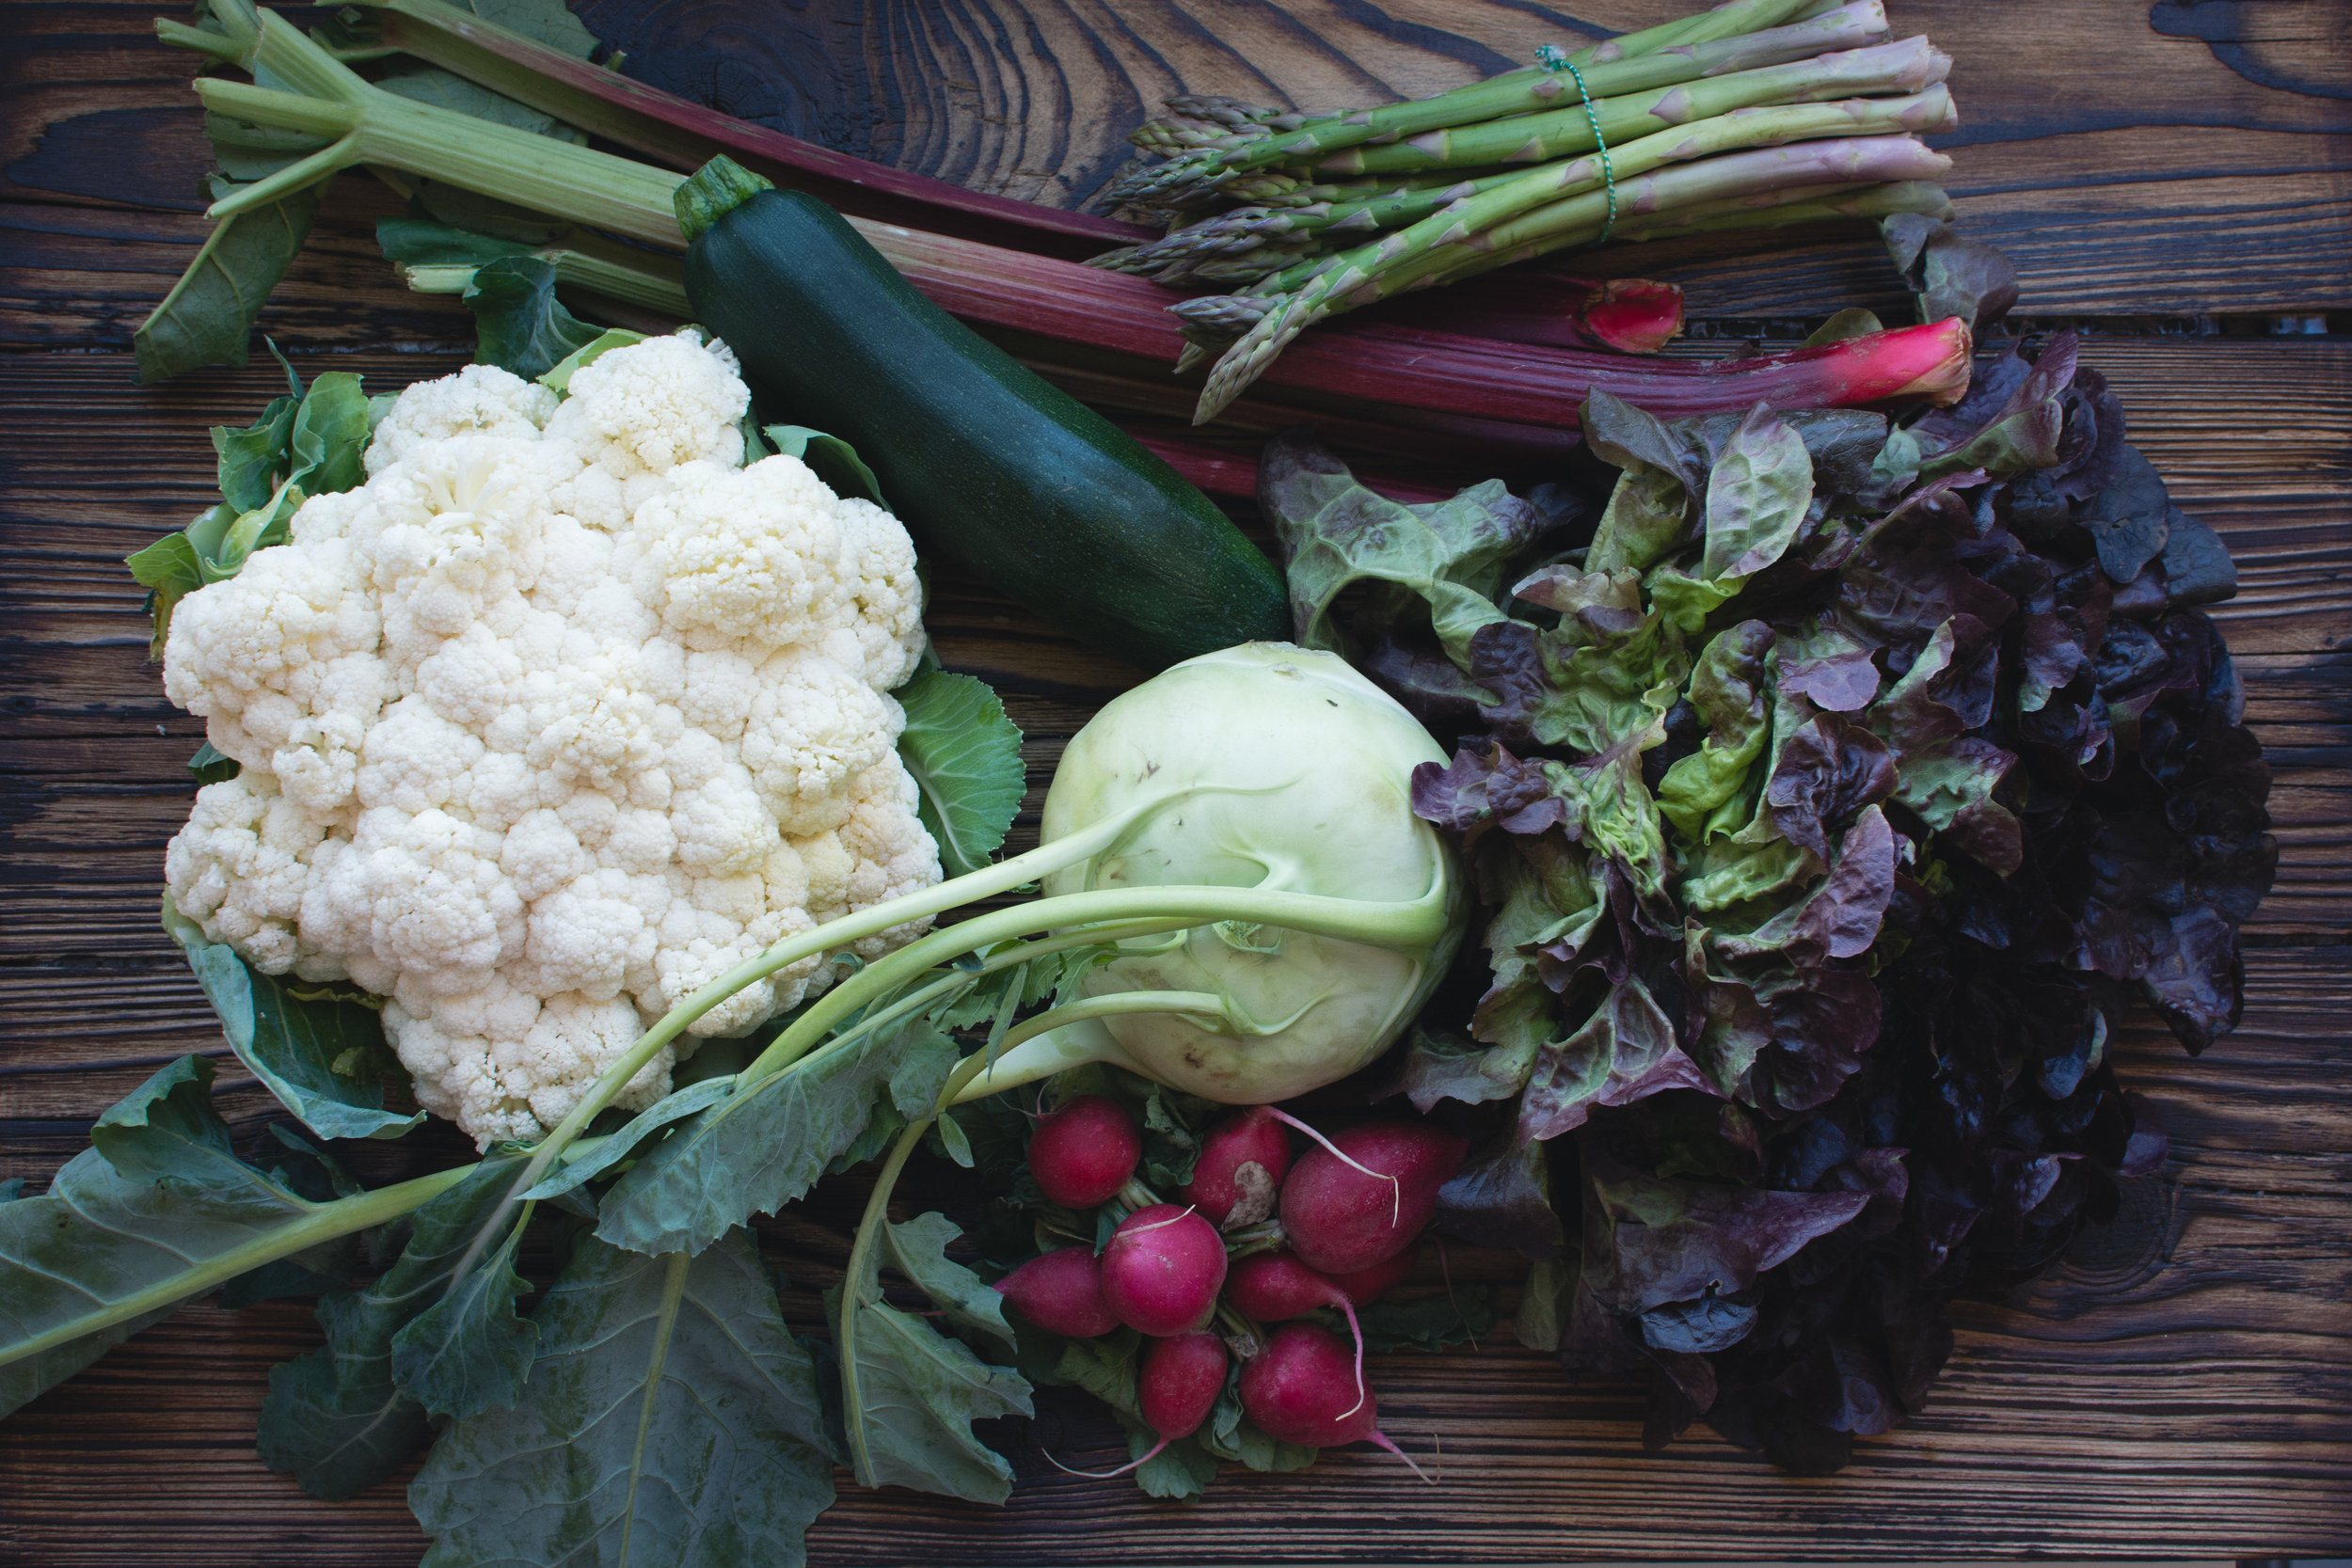 foodiesfeed.com_fresh_vegetables_from_farmers_market.jpg